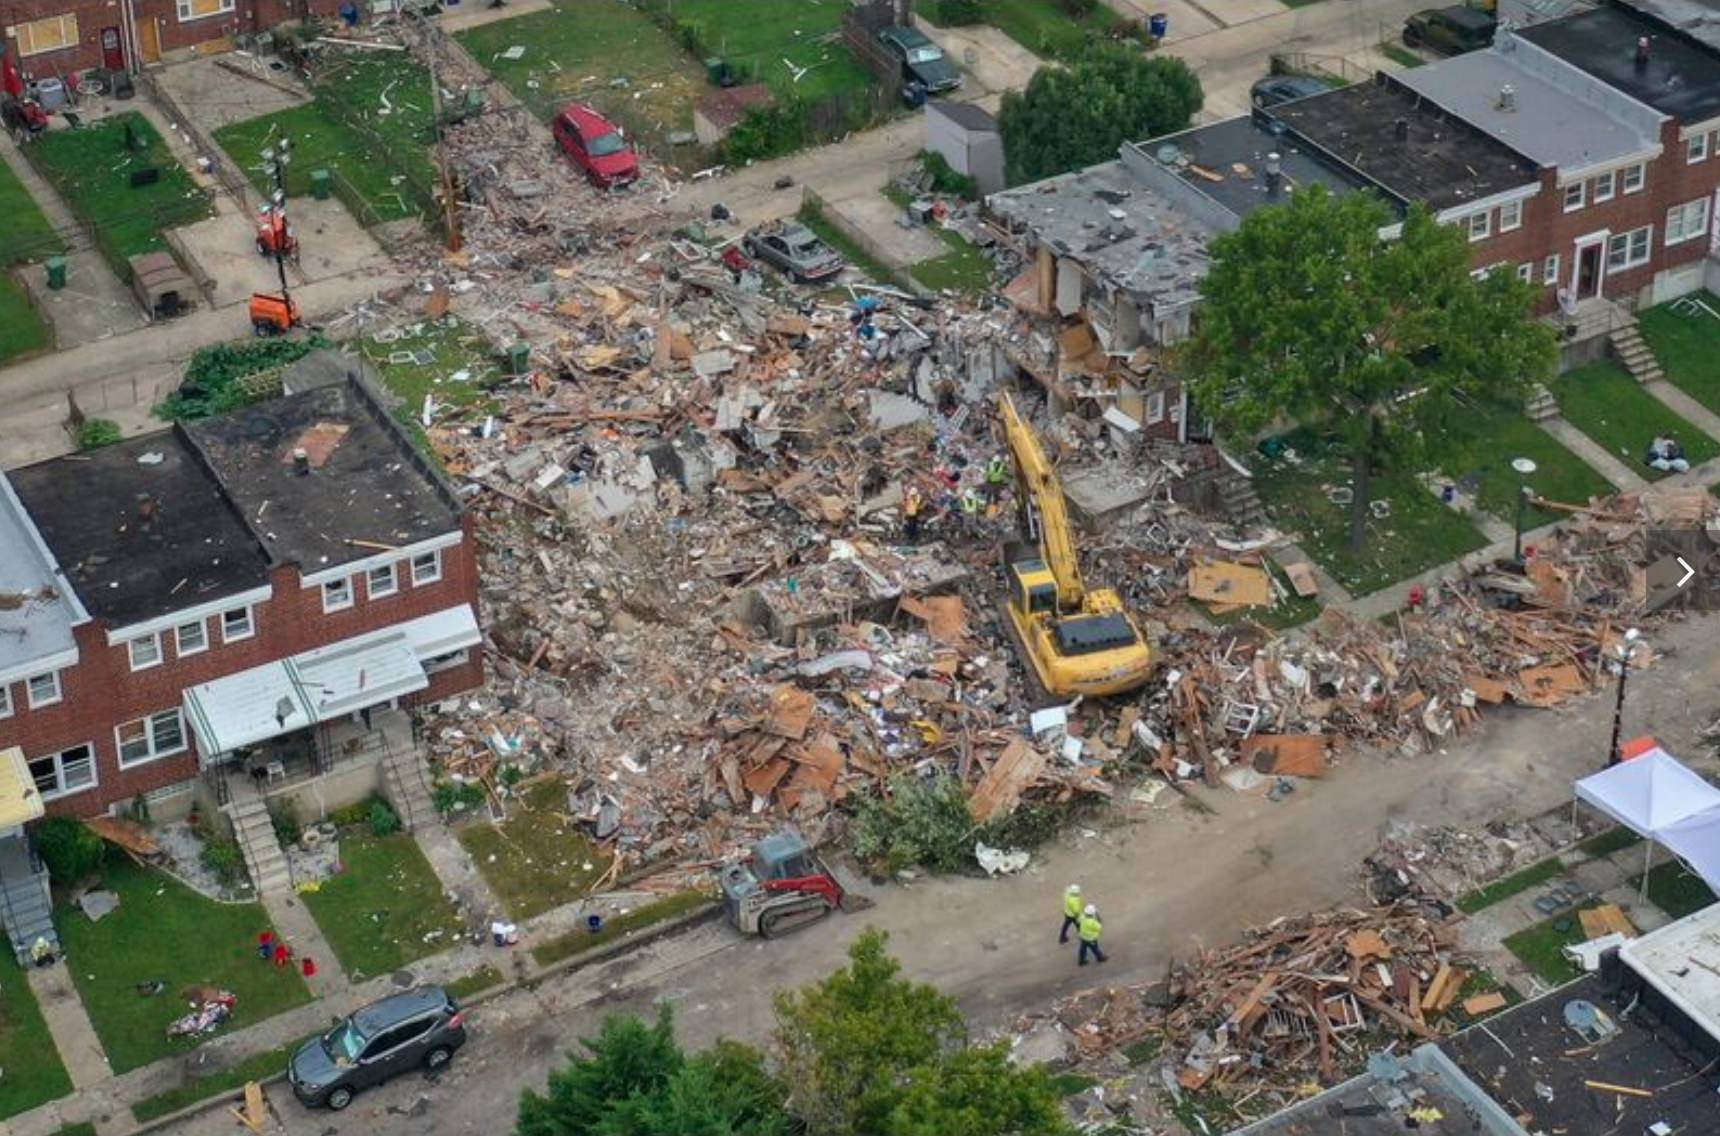 Fire department drone monitors scene of gas explosion in Baltimore